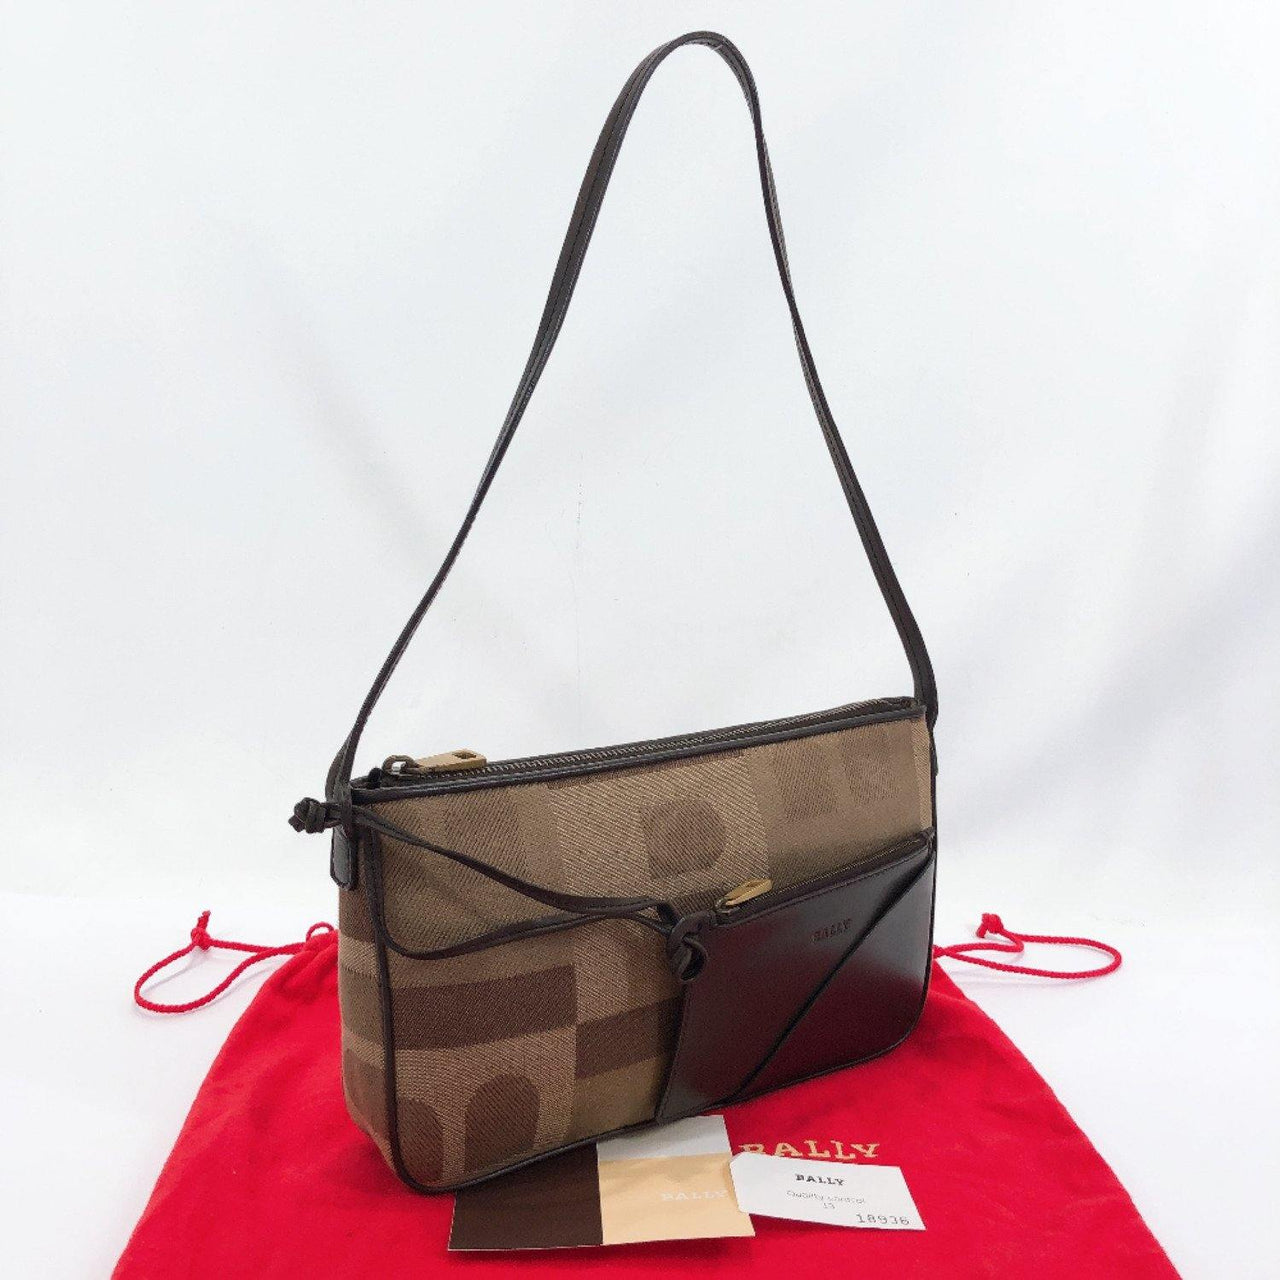 BALLY Shoulder Bag BASSORA canvas/leather Brown Women Used